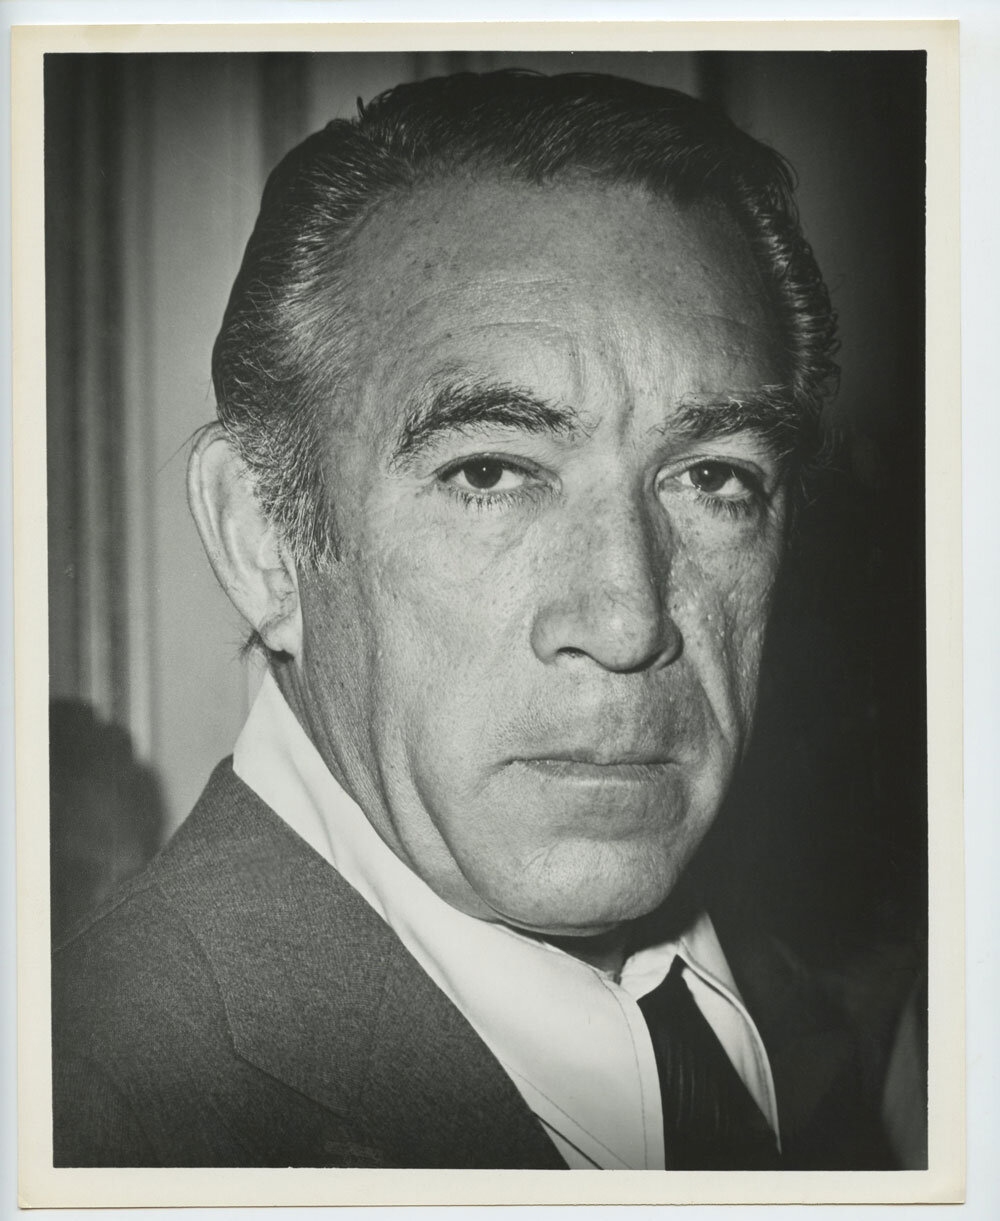 Anthony Quinn Photo 1950s Publicity Portrait